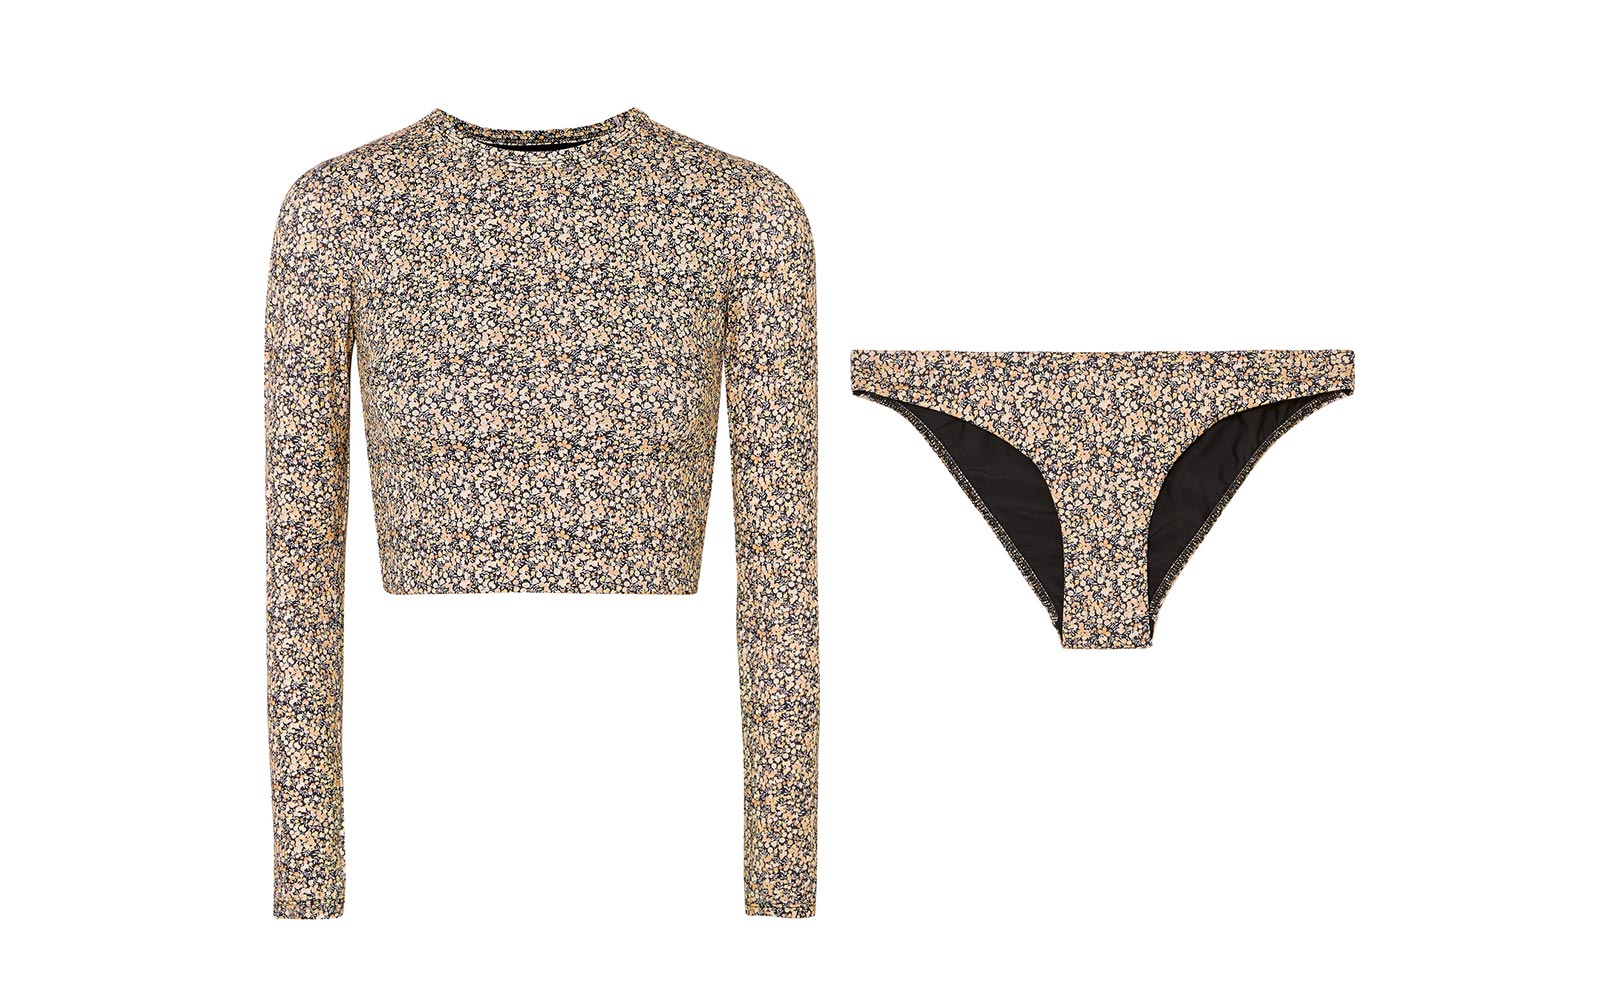 Matteau Sun Tee Printed Cropped Rash Guard and The Classic Printed Bikini Briefs